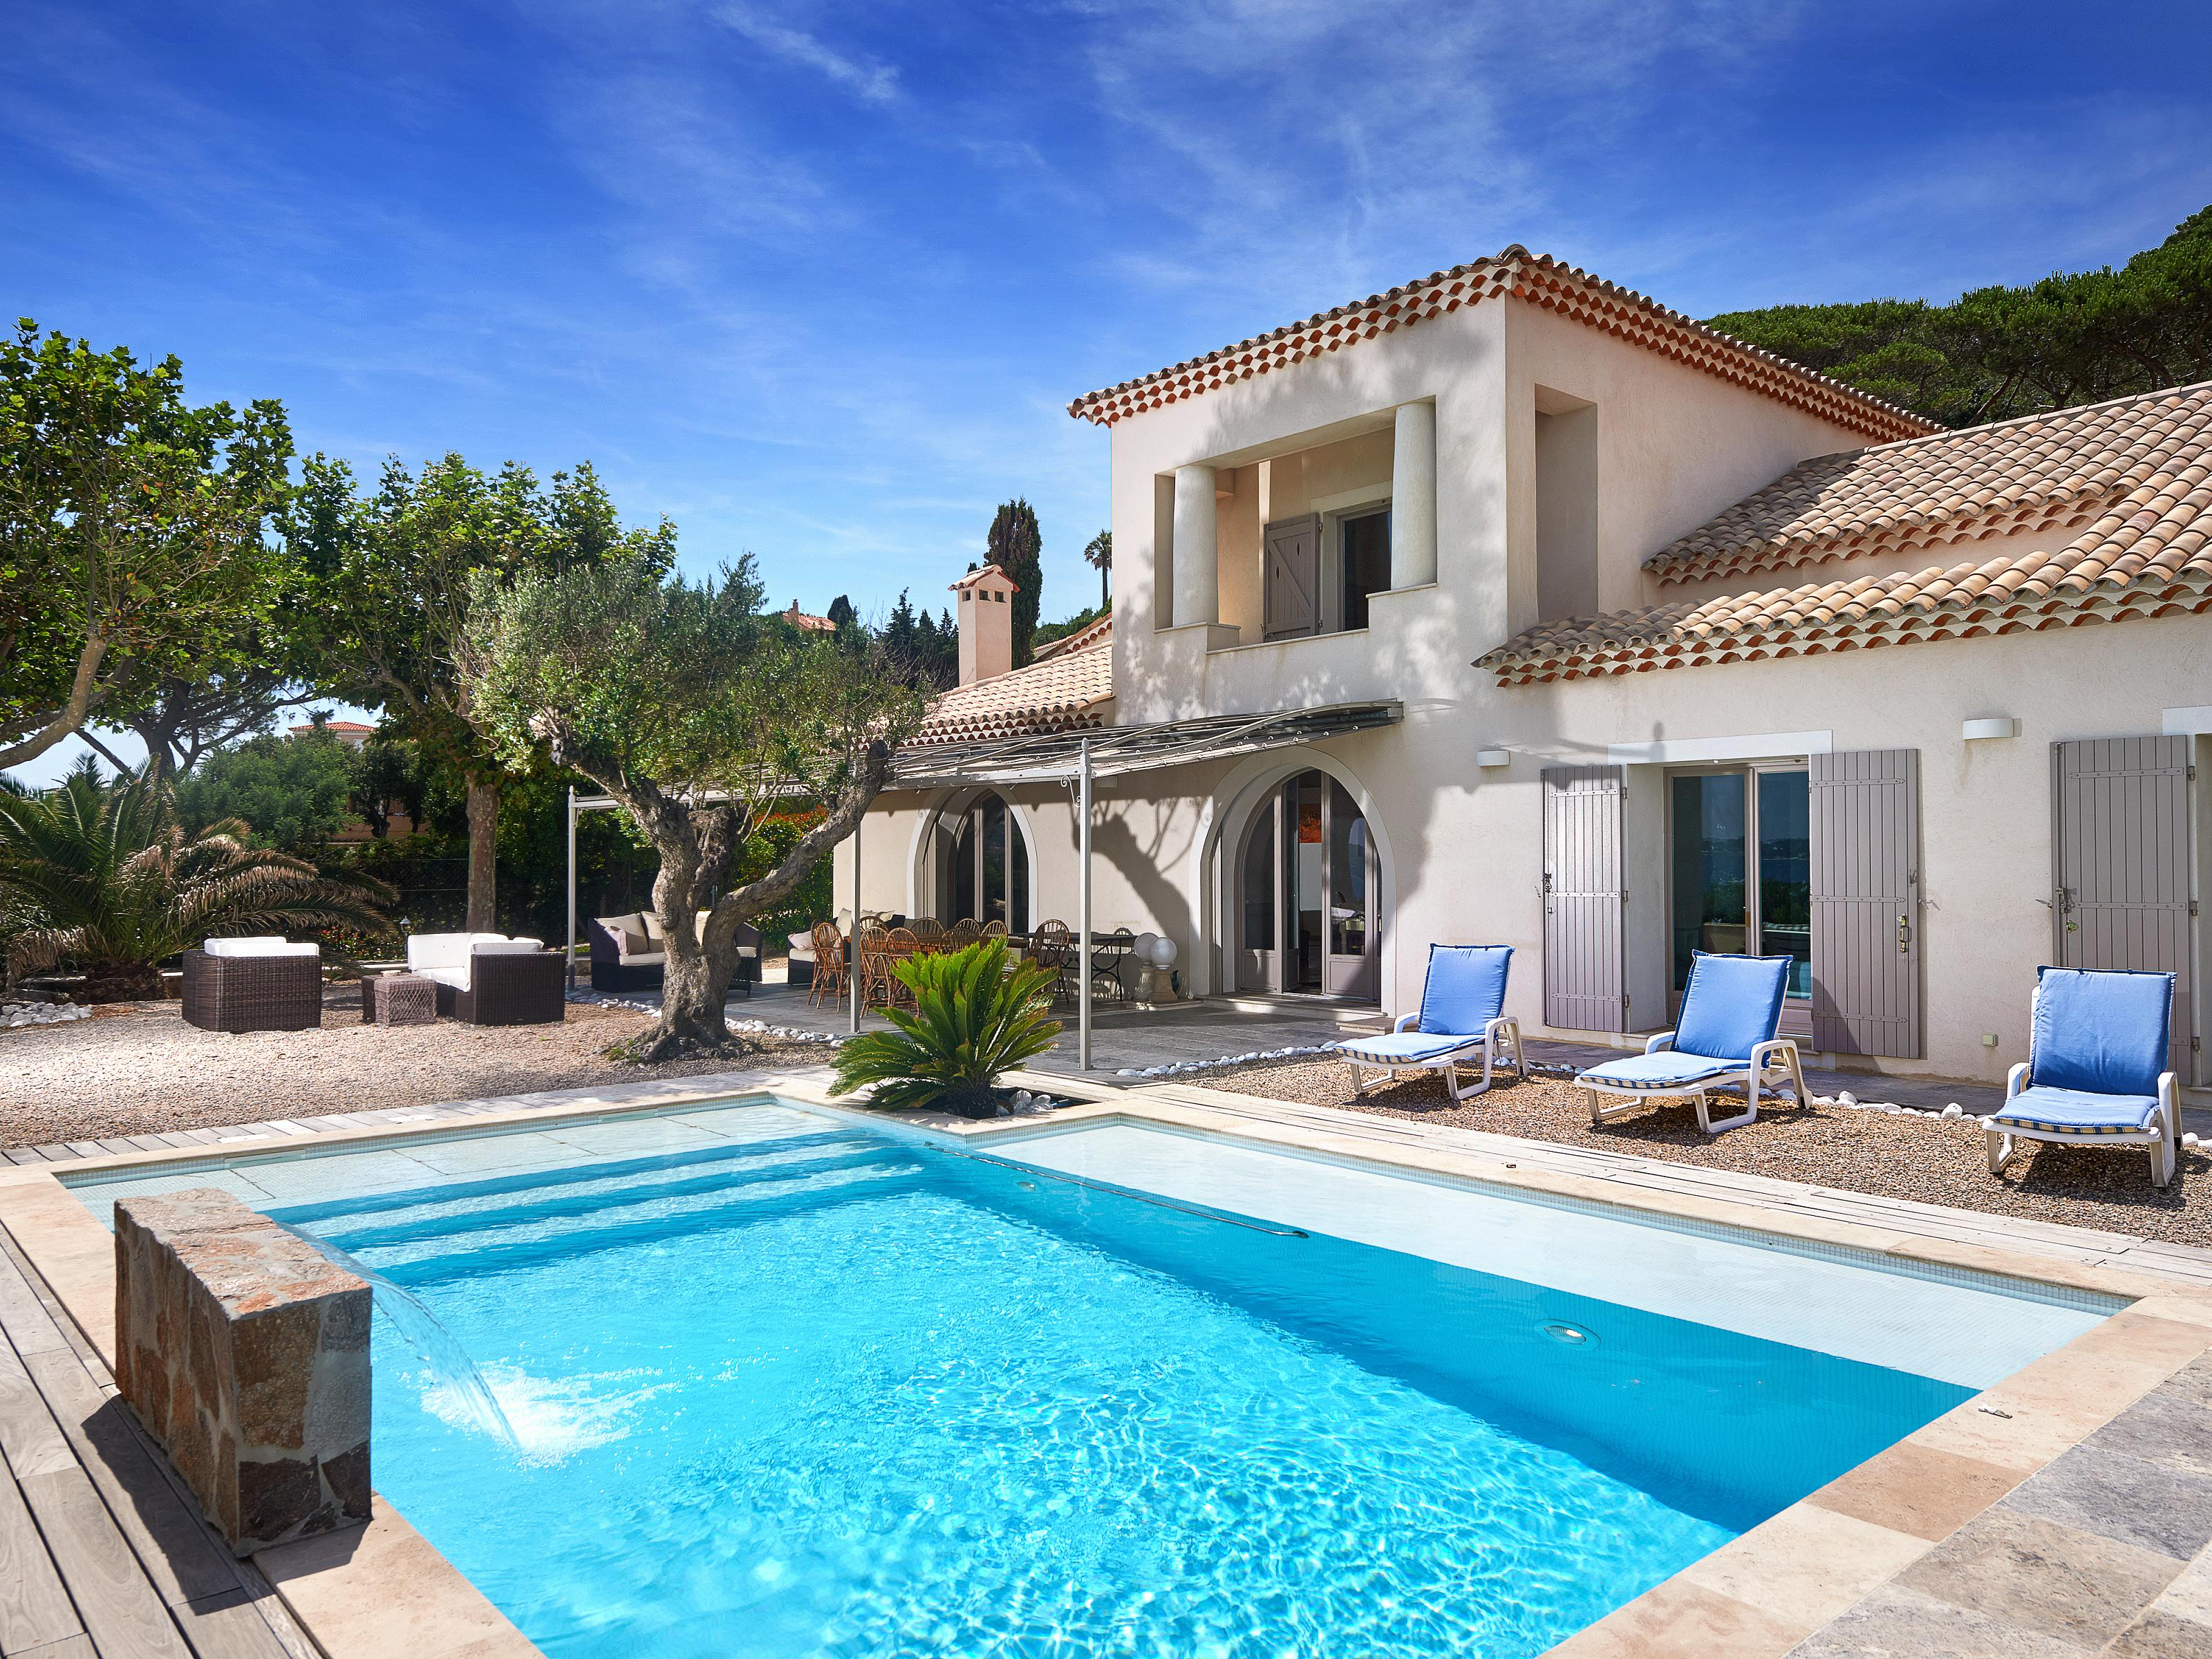 Maison unifamiliale pour l Vente à Fantastic waterfront villa for sale with panoramic views out to the bay Sainte Maxime Other Provence-Alpes-Cote D'Azur, Provence-Alpes-Cote D'Azur 83120 France